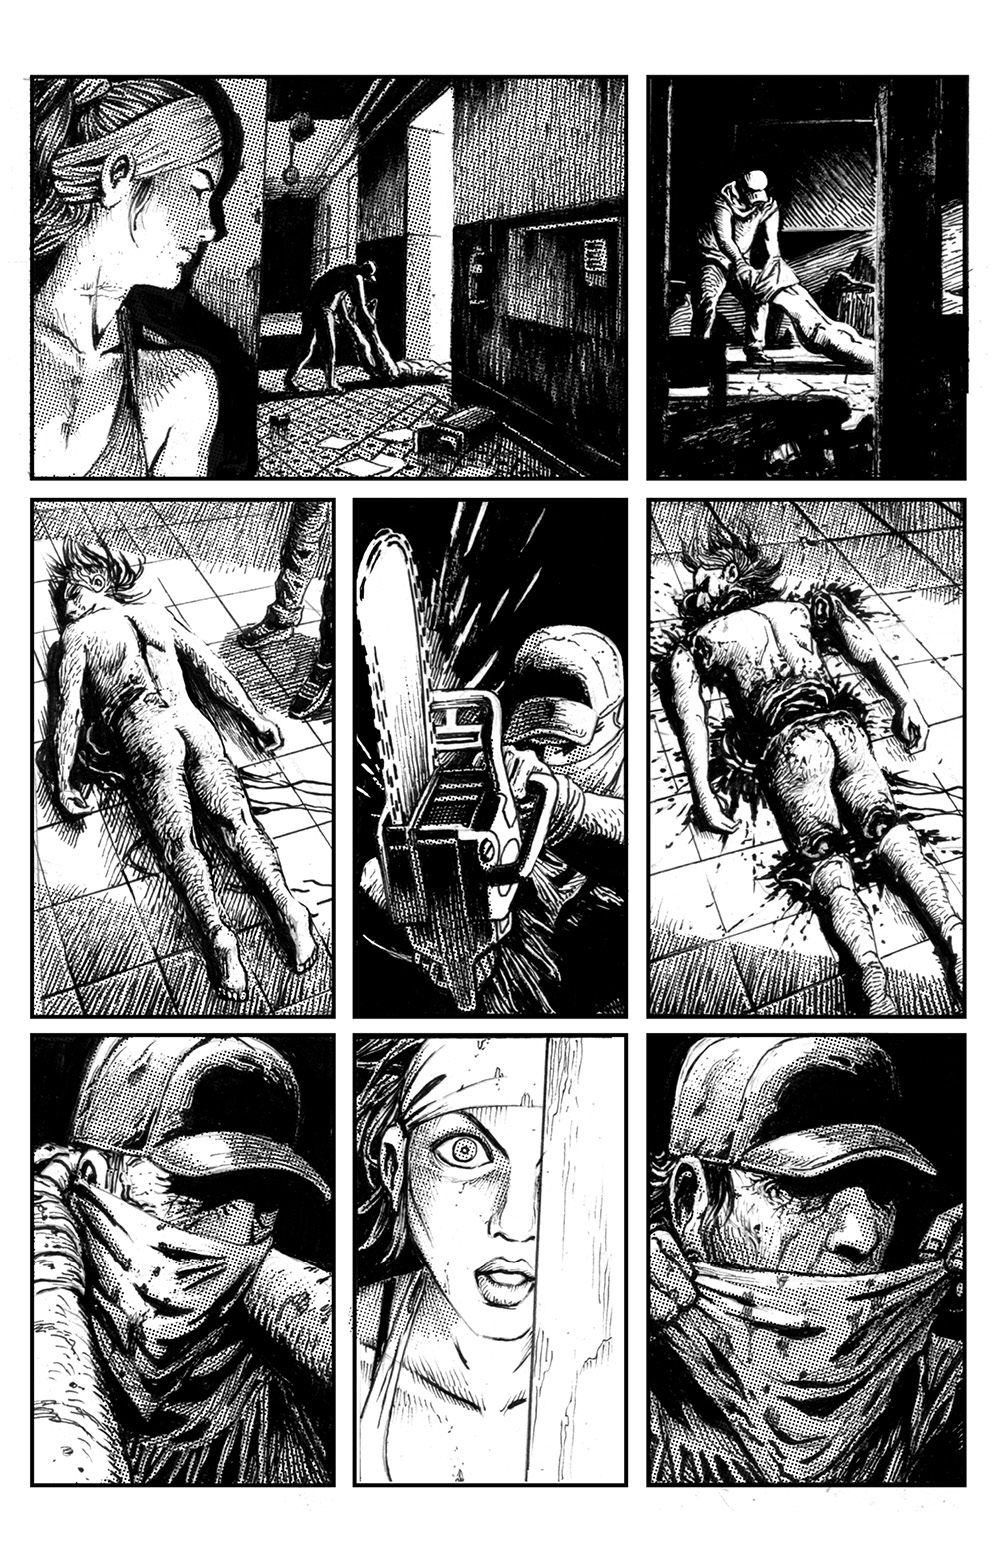 THE SKELETON Chapter #1 Page #10